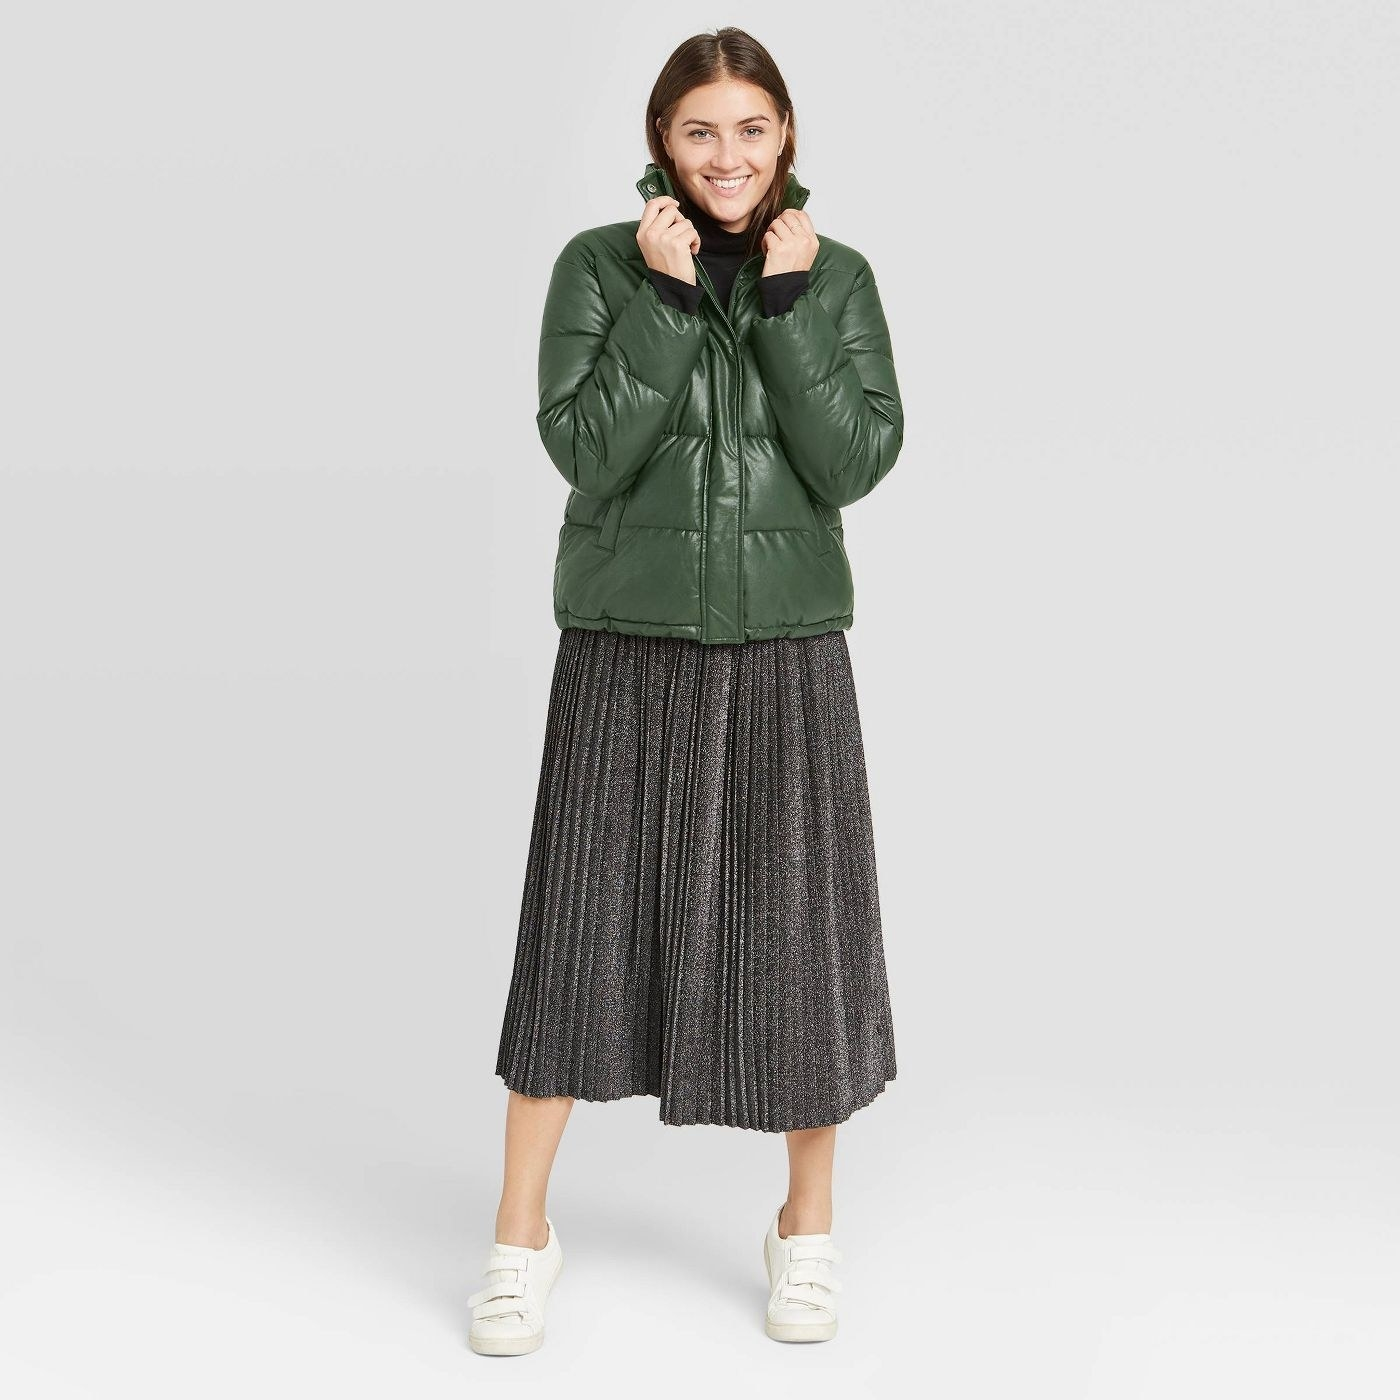 Model in green puffer jacket and metallic skirt